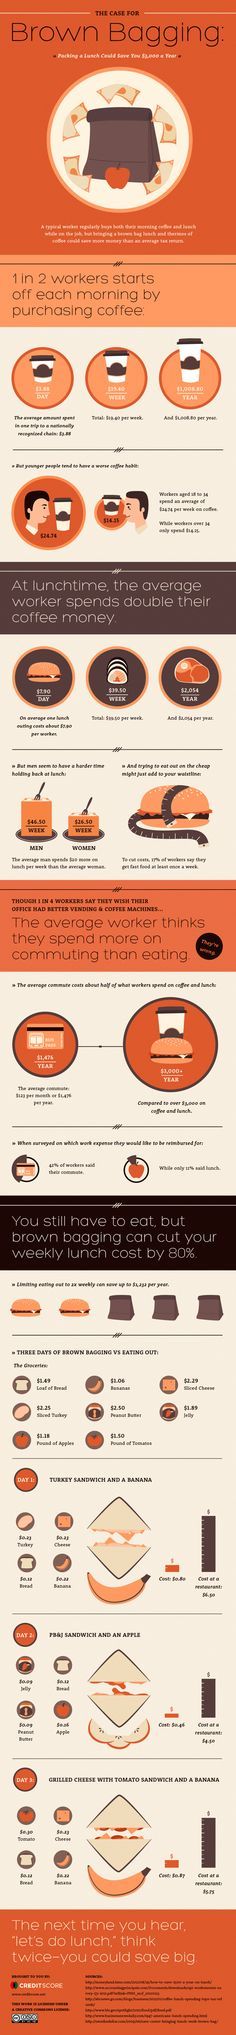 The Case for Brown Bagging: Packing a Lunch Could Save You $3,000 a Year - CreditScore.net